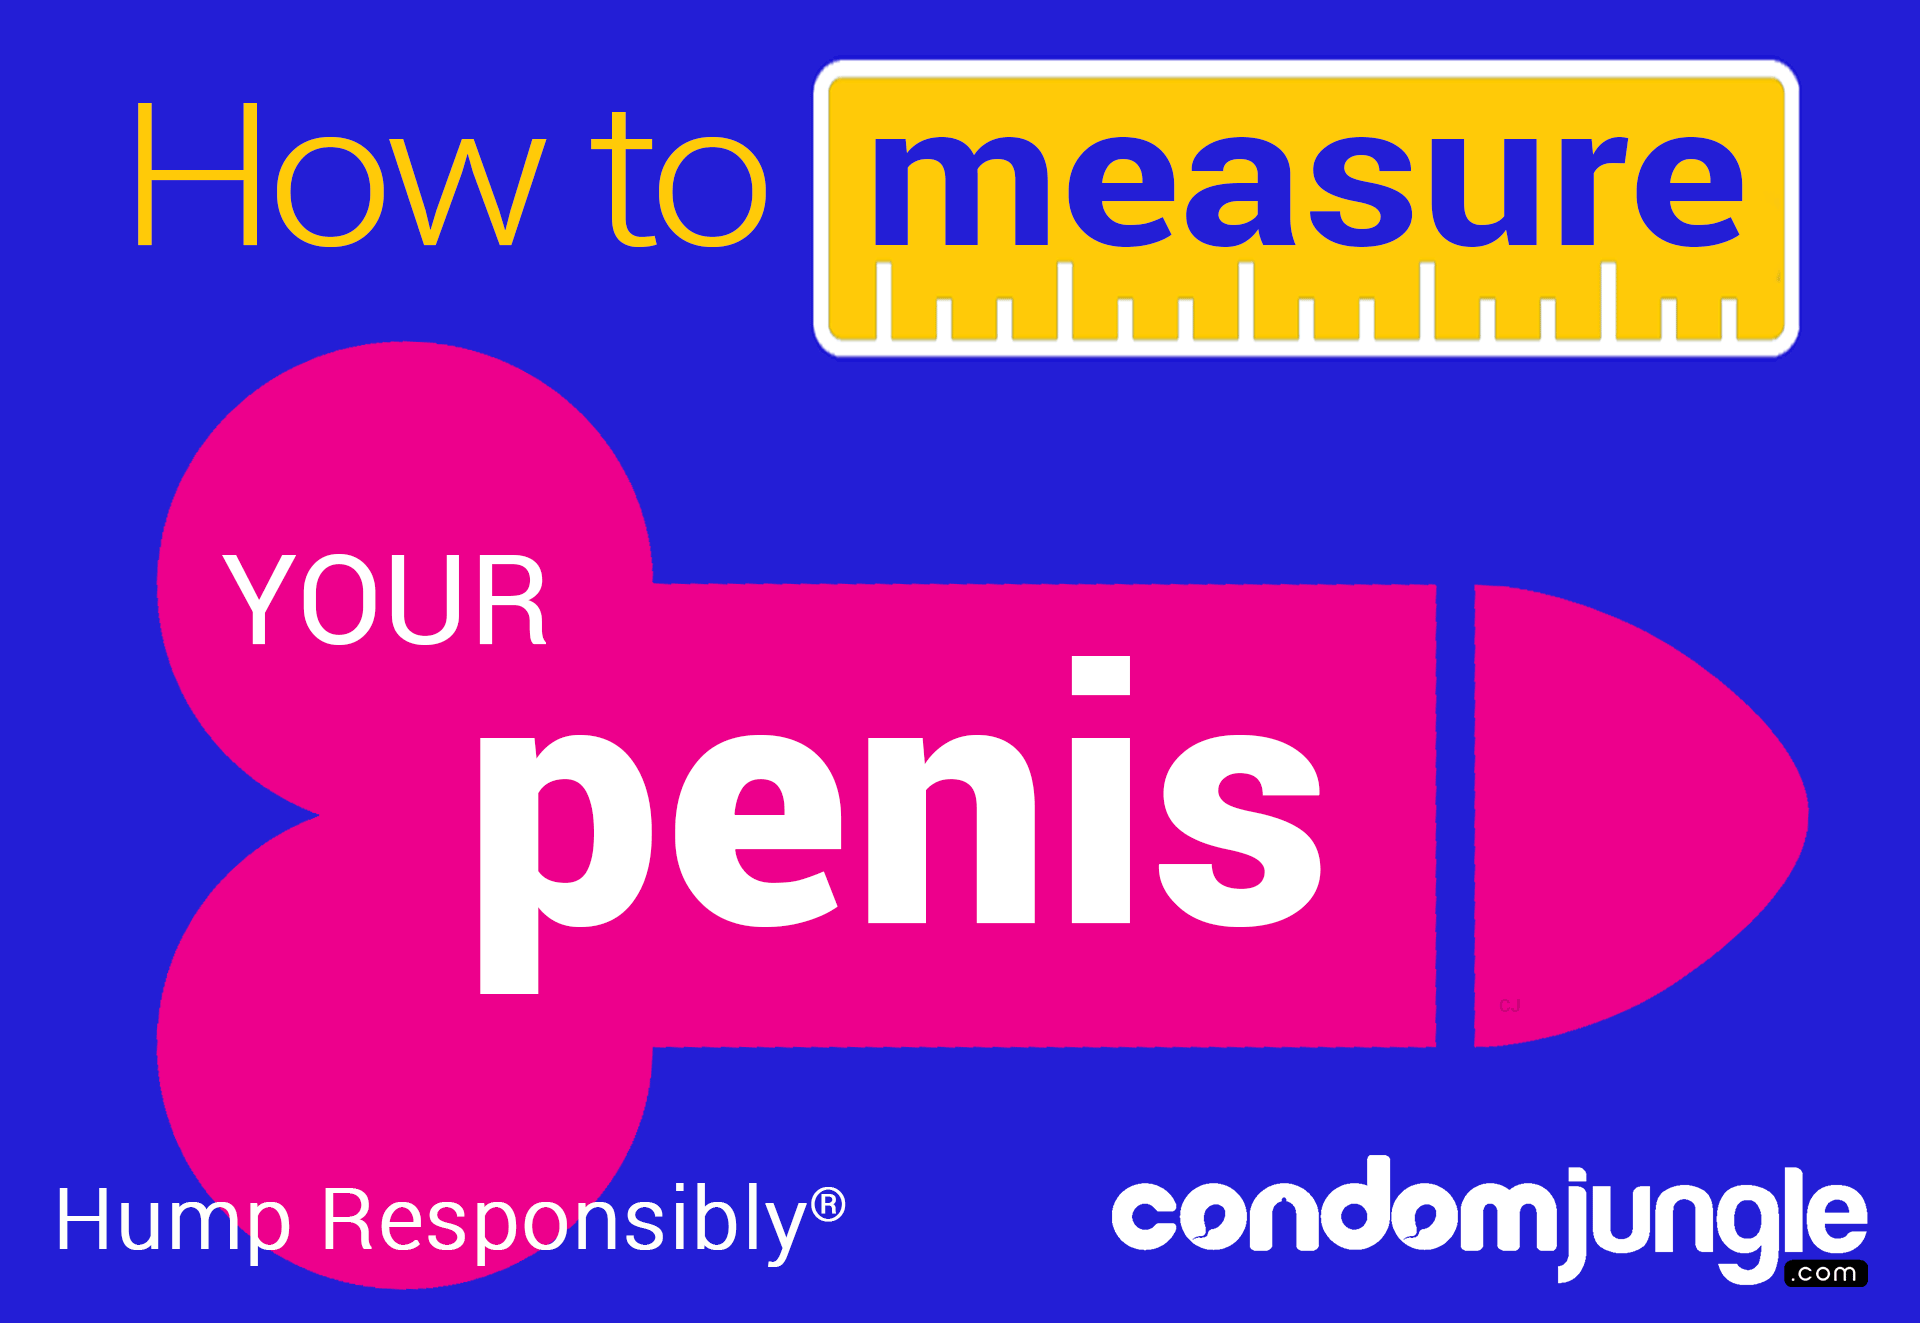 Phrase... Measurements of penis